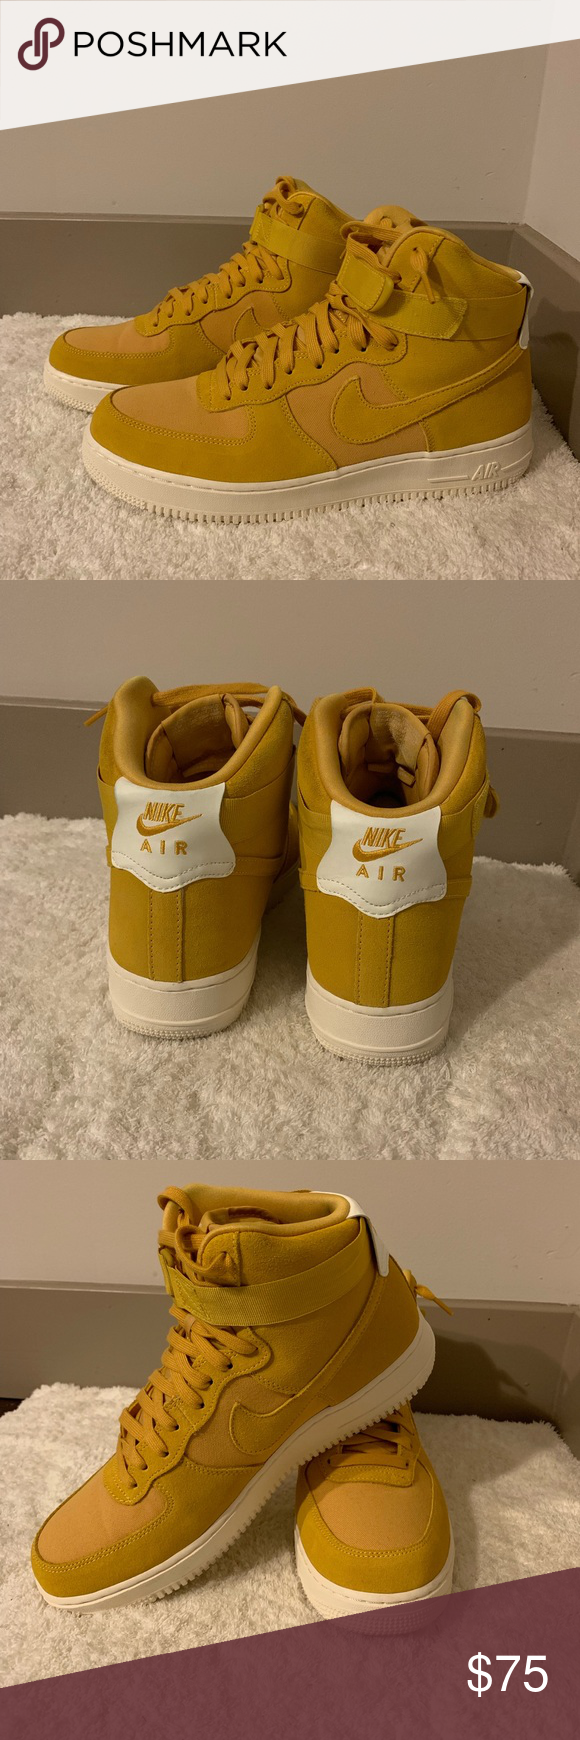 Men's Air Force 1 Hightop High tops, Nike gold, Air force